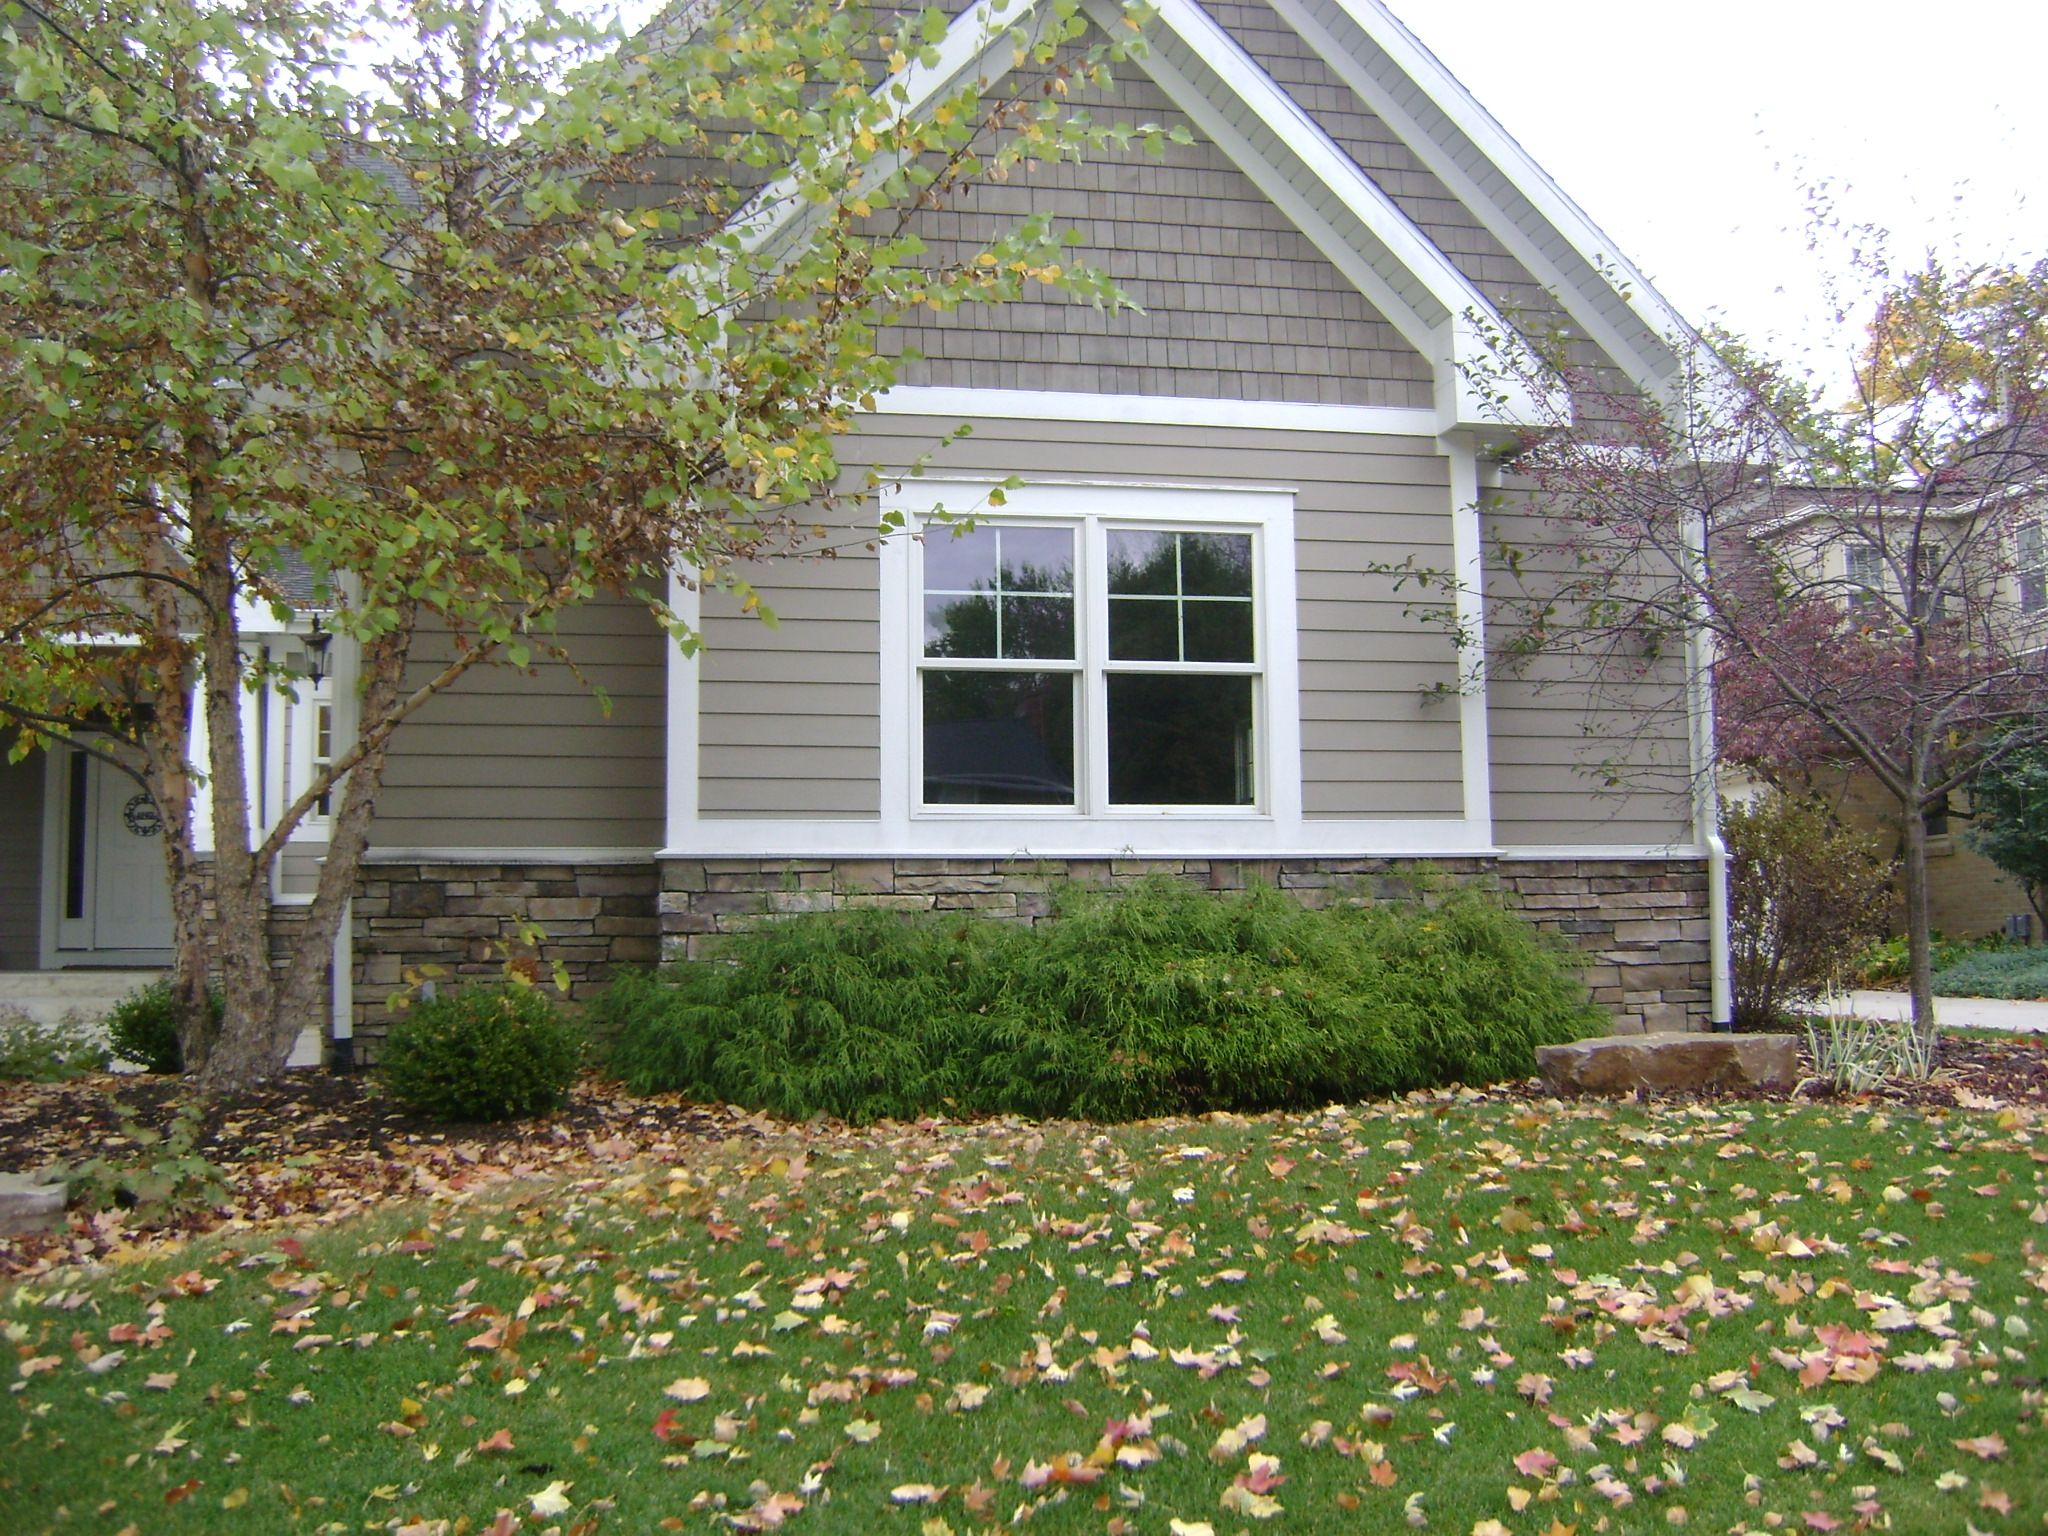 Craftsman exterior house paint ideas - Taupe Exterior White Trim I Wonder If I Could Put Shingling Anywhere On Our Exterior House Paintsexterior